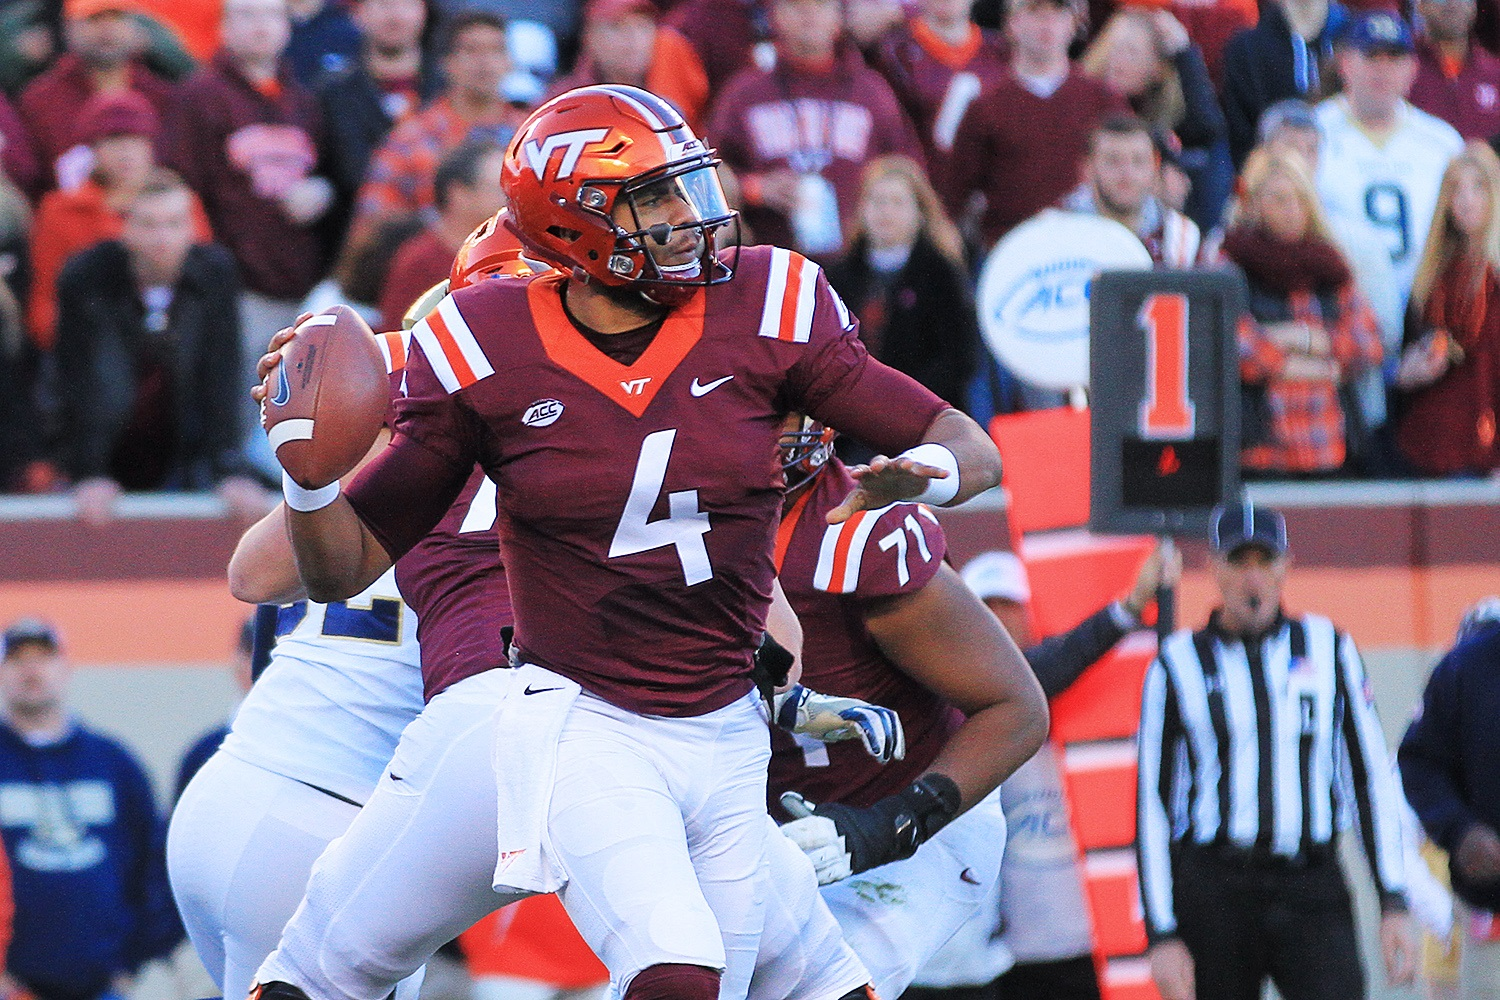 Jerod Evans and the Hokies will hope to play better next week.